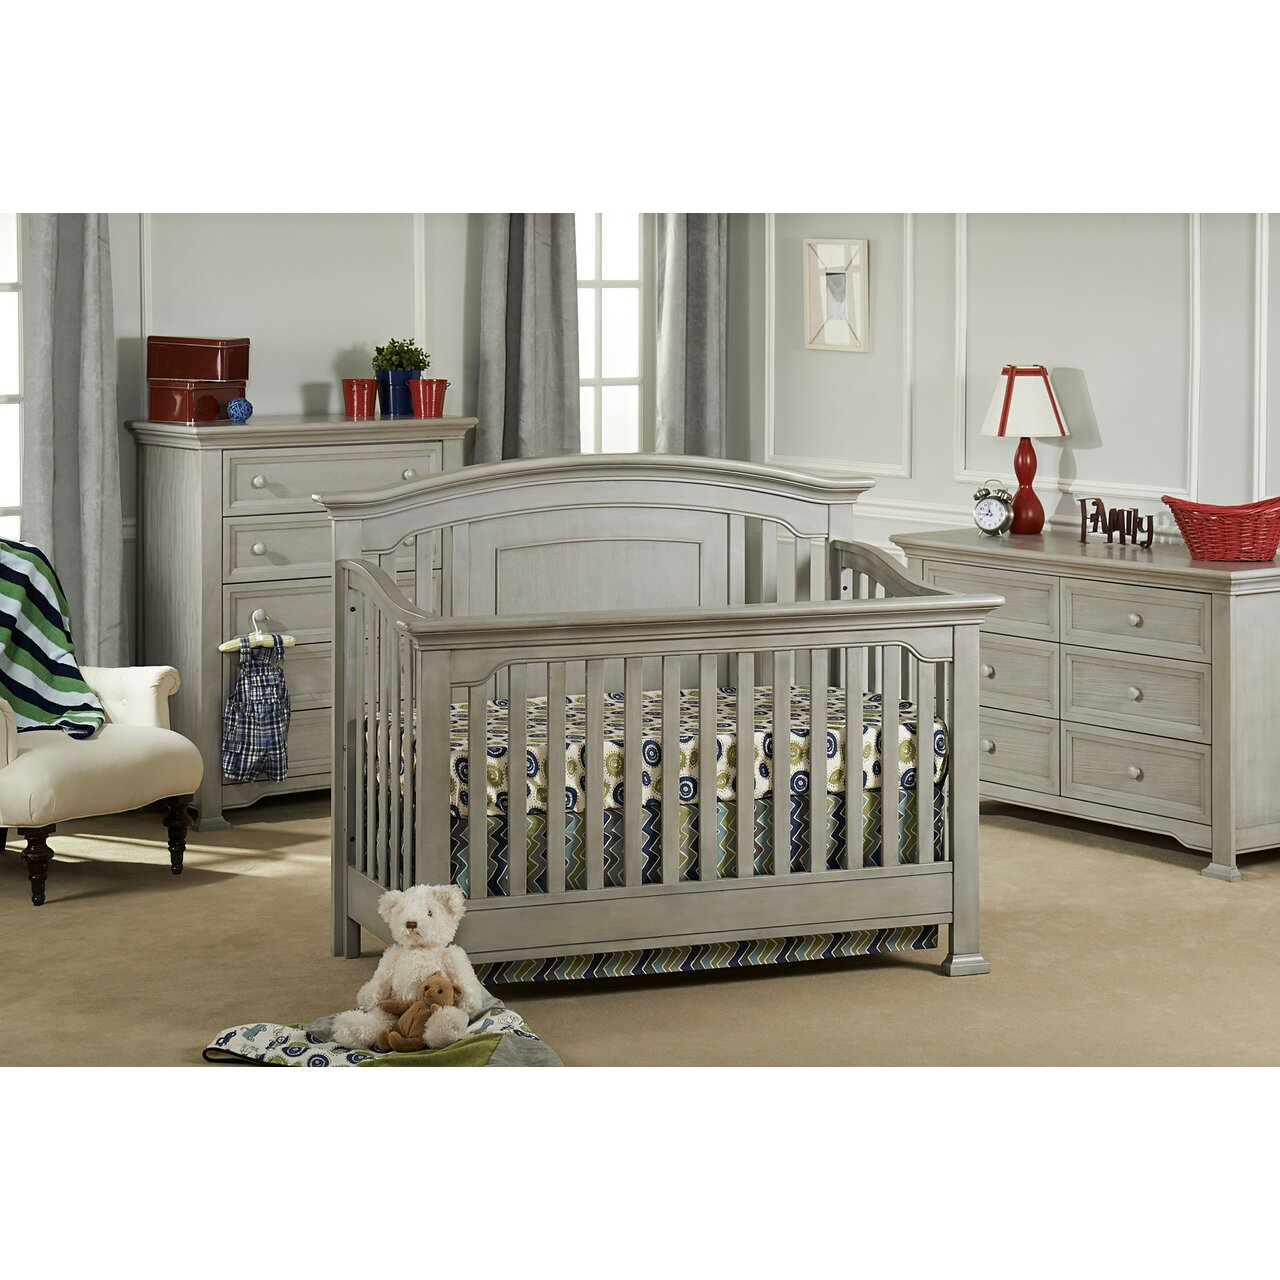 Crib for sale louisville ky - Baby Cribs With Drawers Munir Eacute Medford Lifetime 4 In 1 Convertible Crib